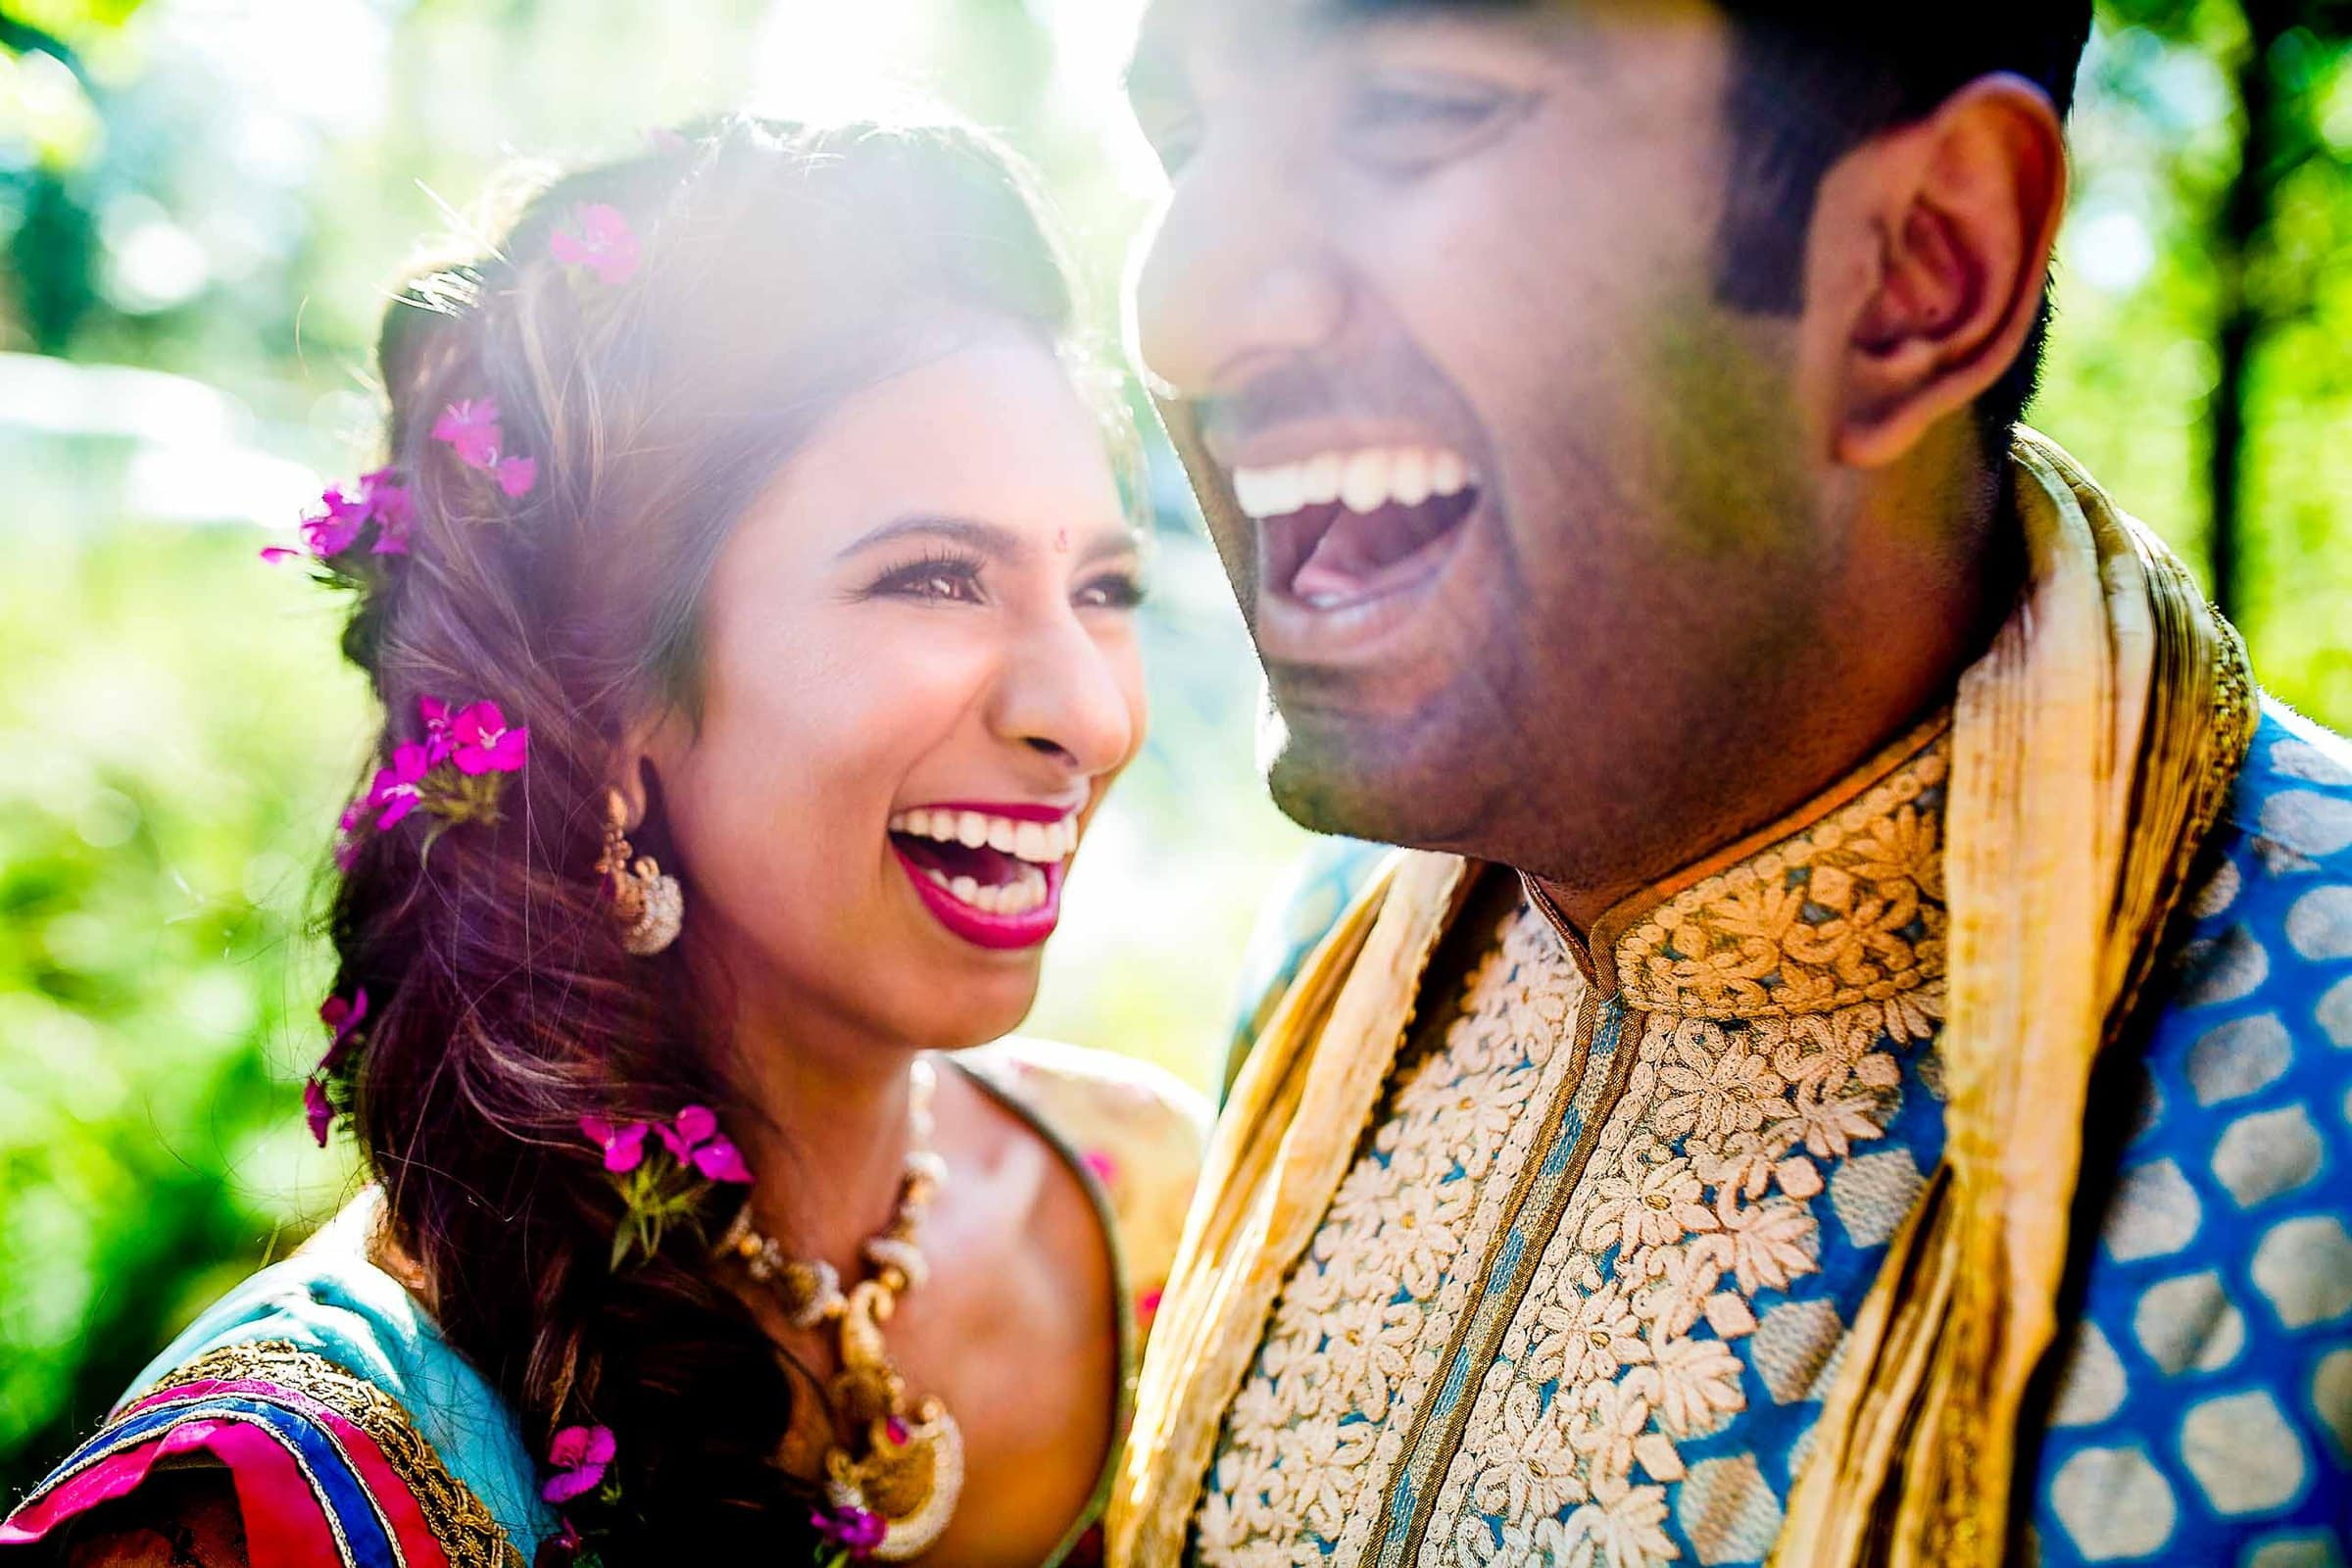 Indian couple laughing in beautiful sunlight at Sunriver Resort in Bend, Oregon